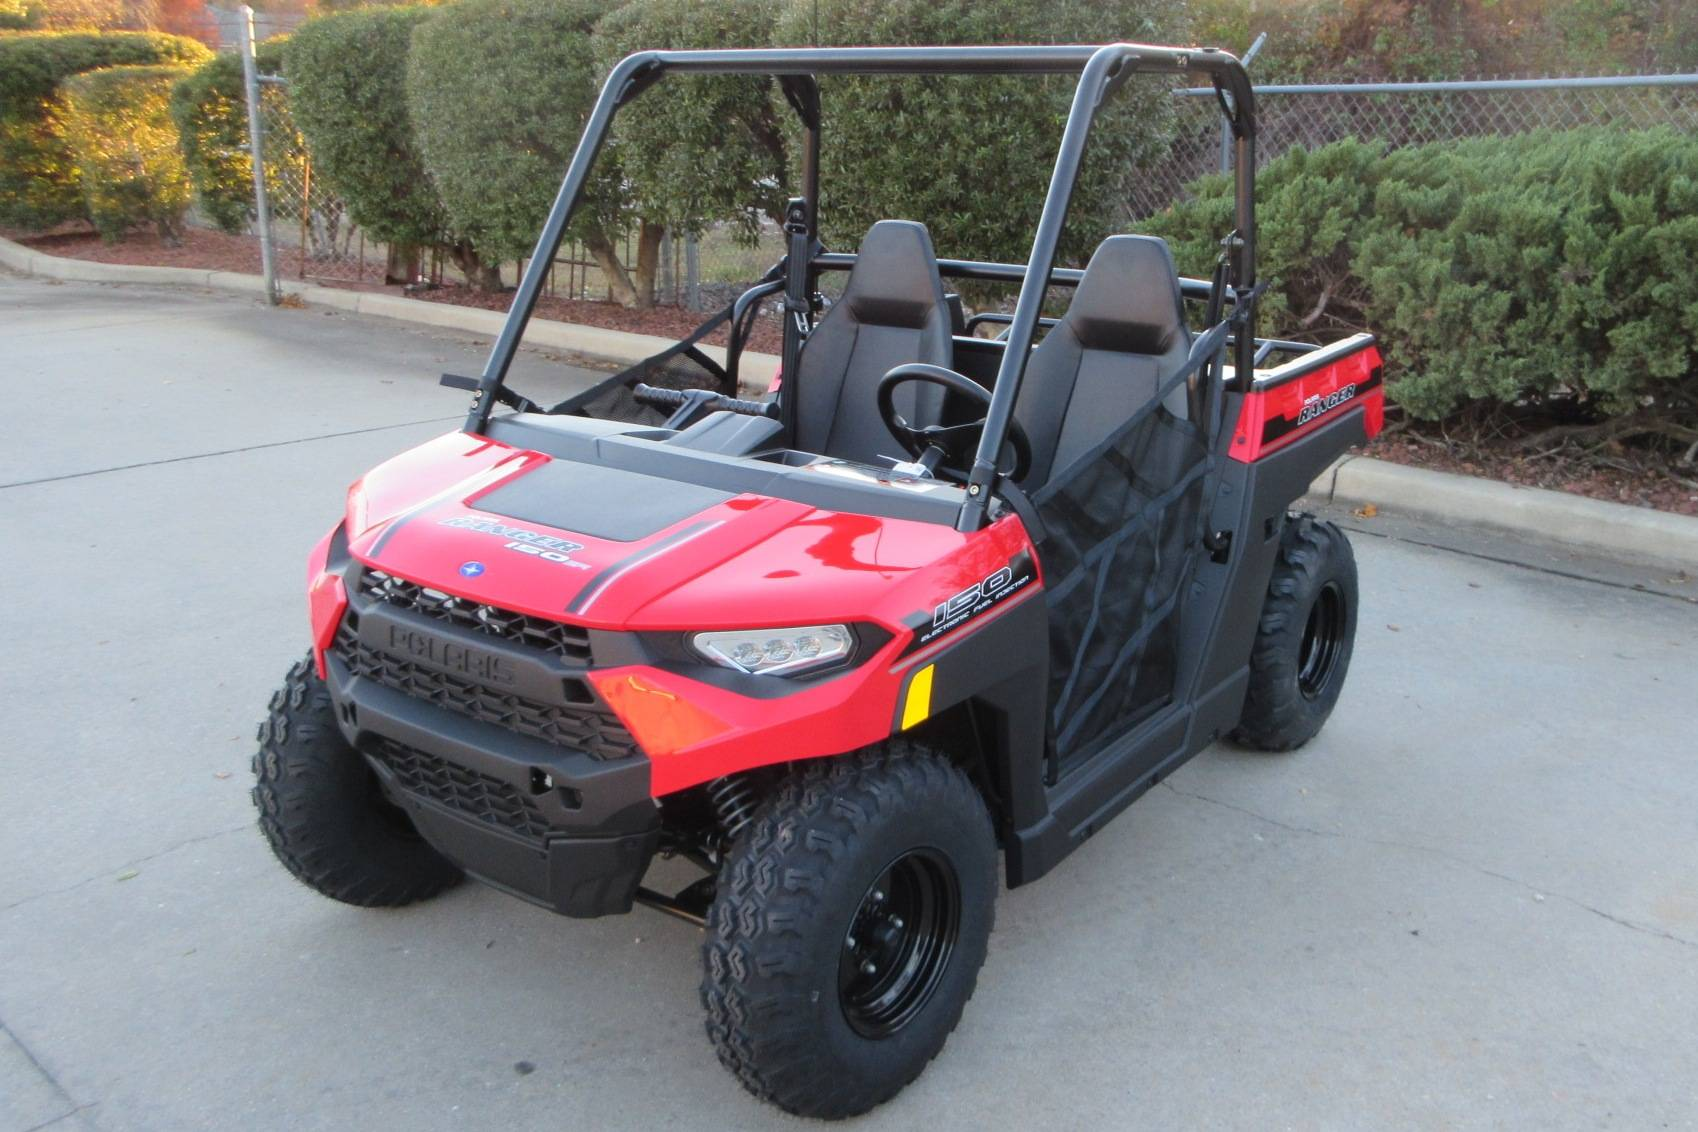 2019 Polaris Ranger 150 EFI in Sumter, South Carolina - Photo 3